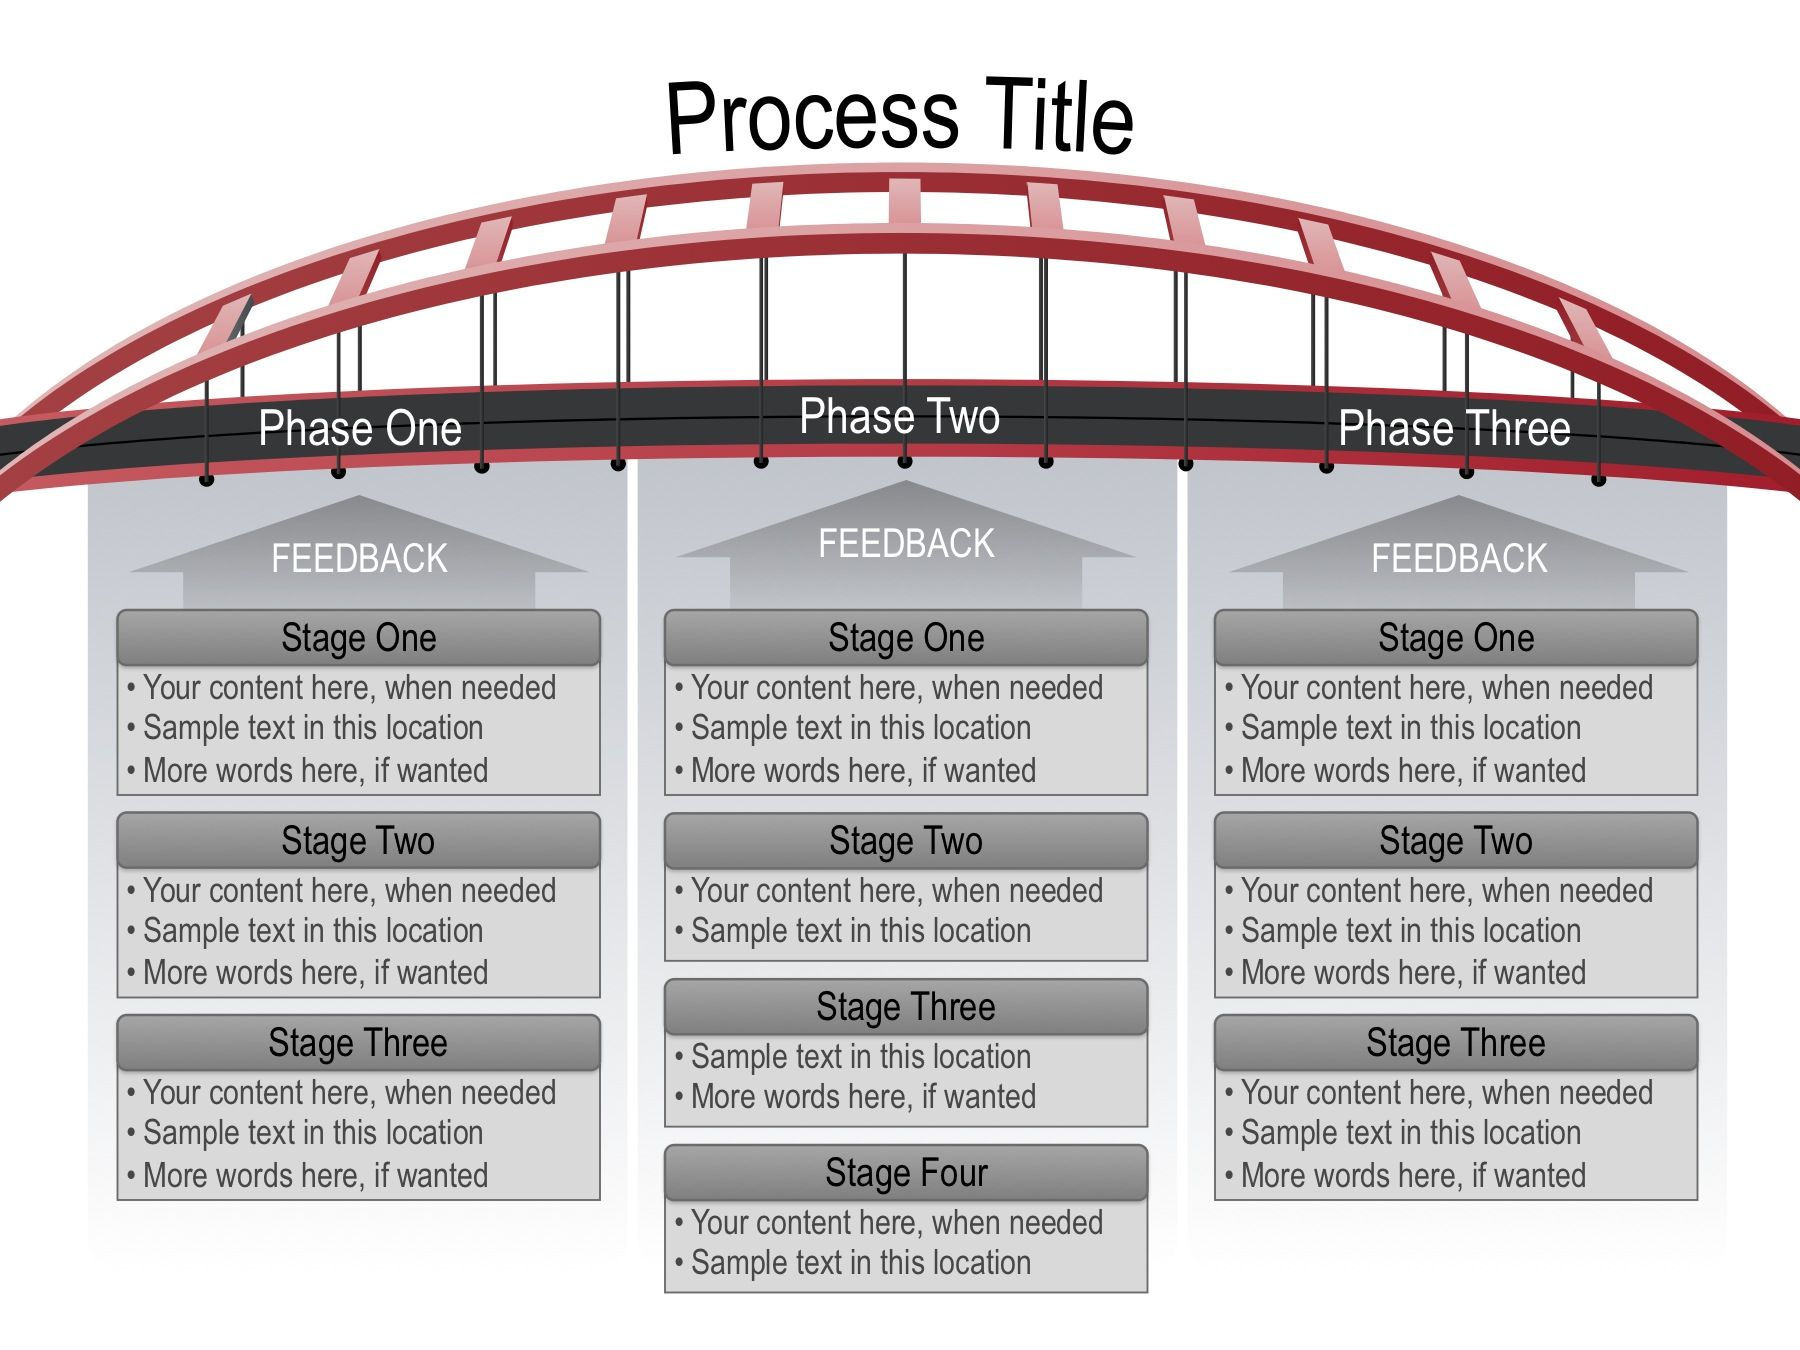 Use this fully editable Bridge Graphic as a visual metaphor